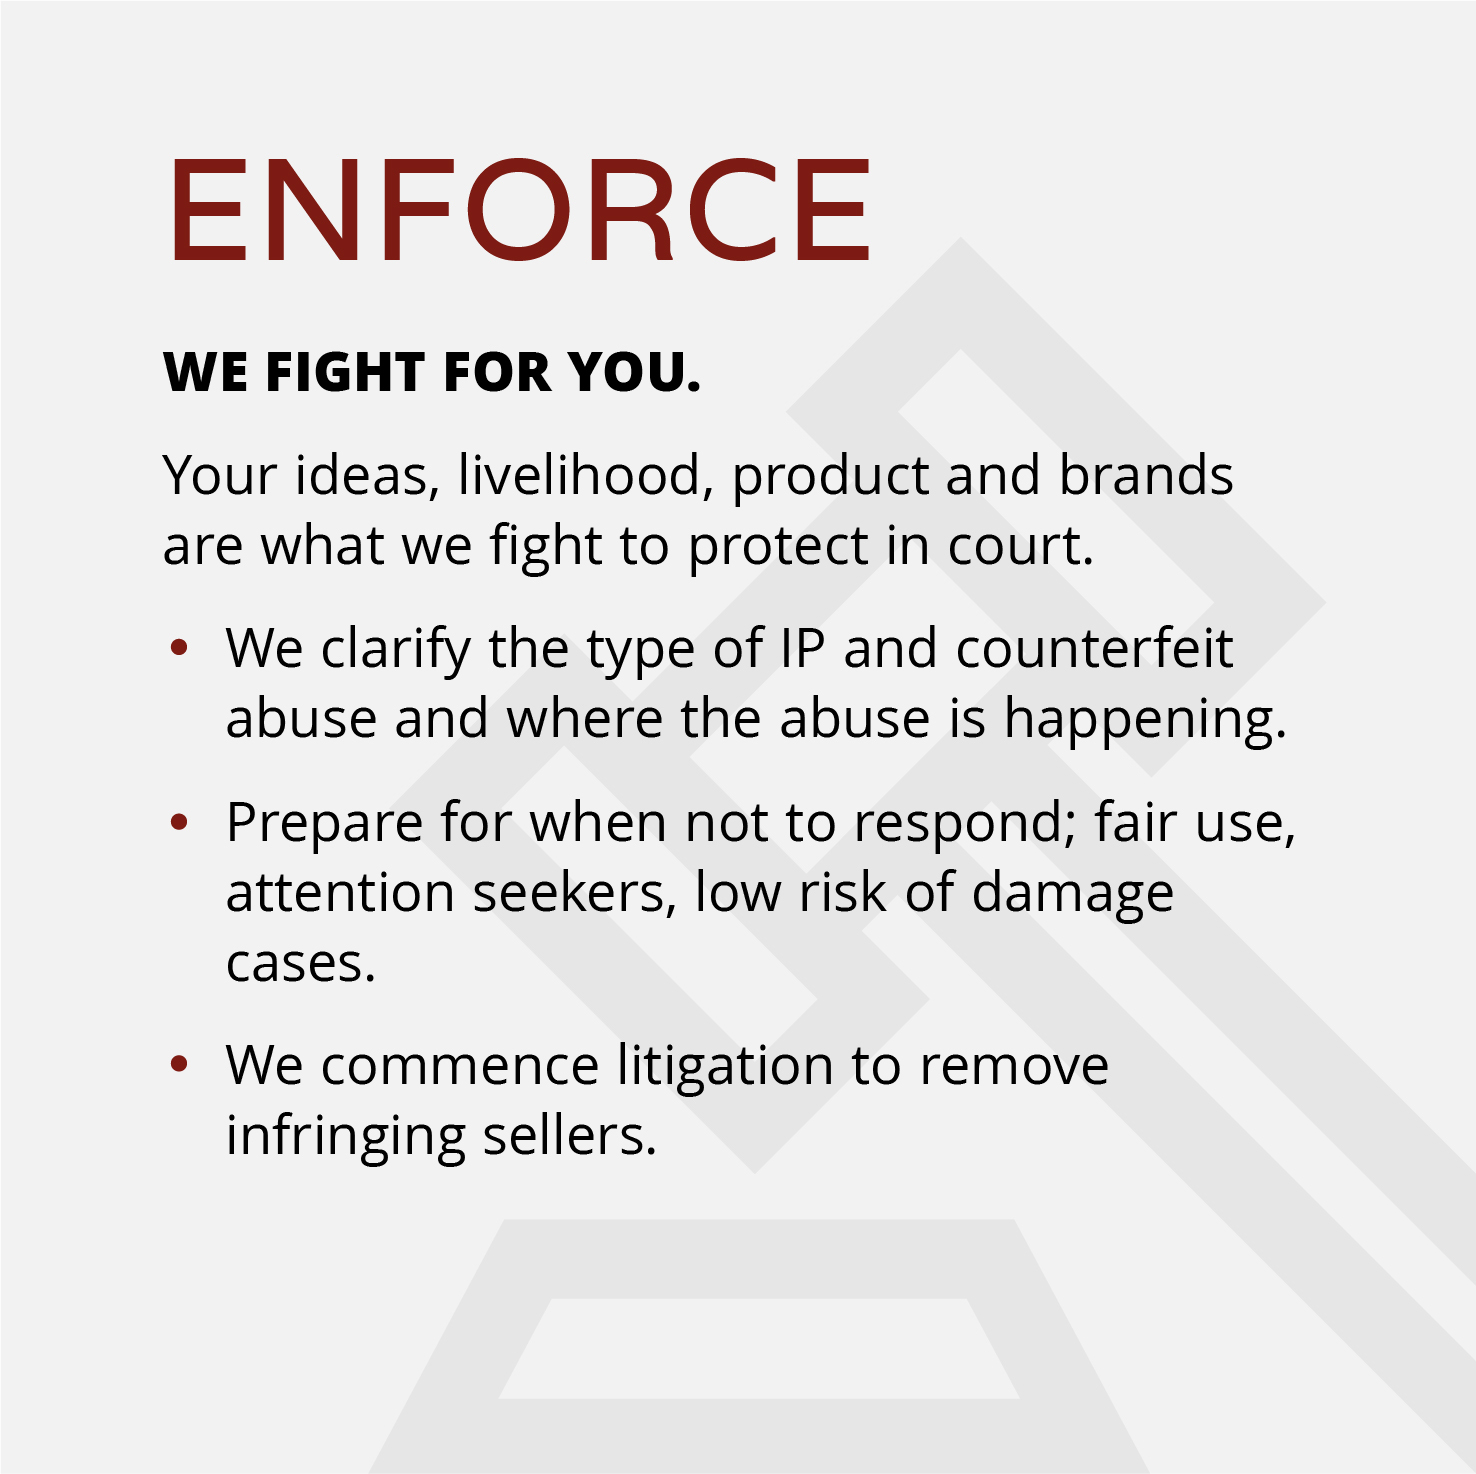 ENFORCE WE FIGHT FOR YOU.  Your ideas, livelihood, product and brands are what we fight to protect in court. ●We clarify the type of IP and counterfeit abuse and where the abuse is happening.  ●Prepare for when not to respond; fair use, attention seekers, low risk of damage cases. ●We commence litigation to remove infringing sellers.